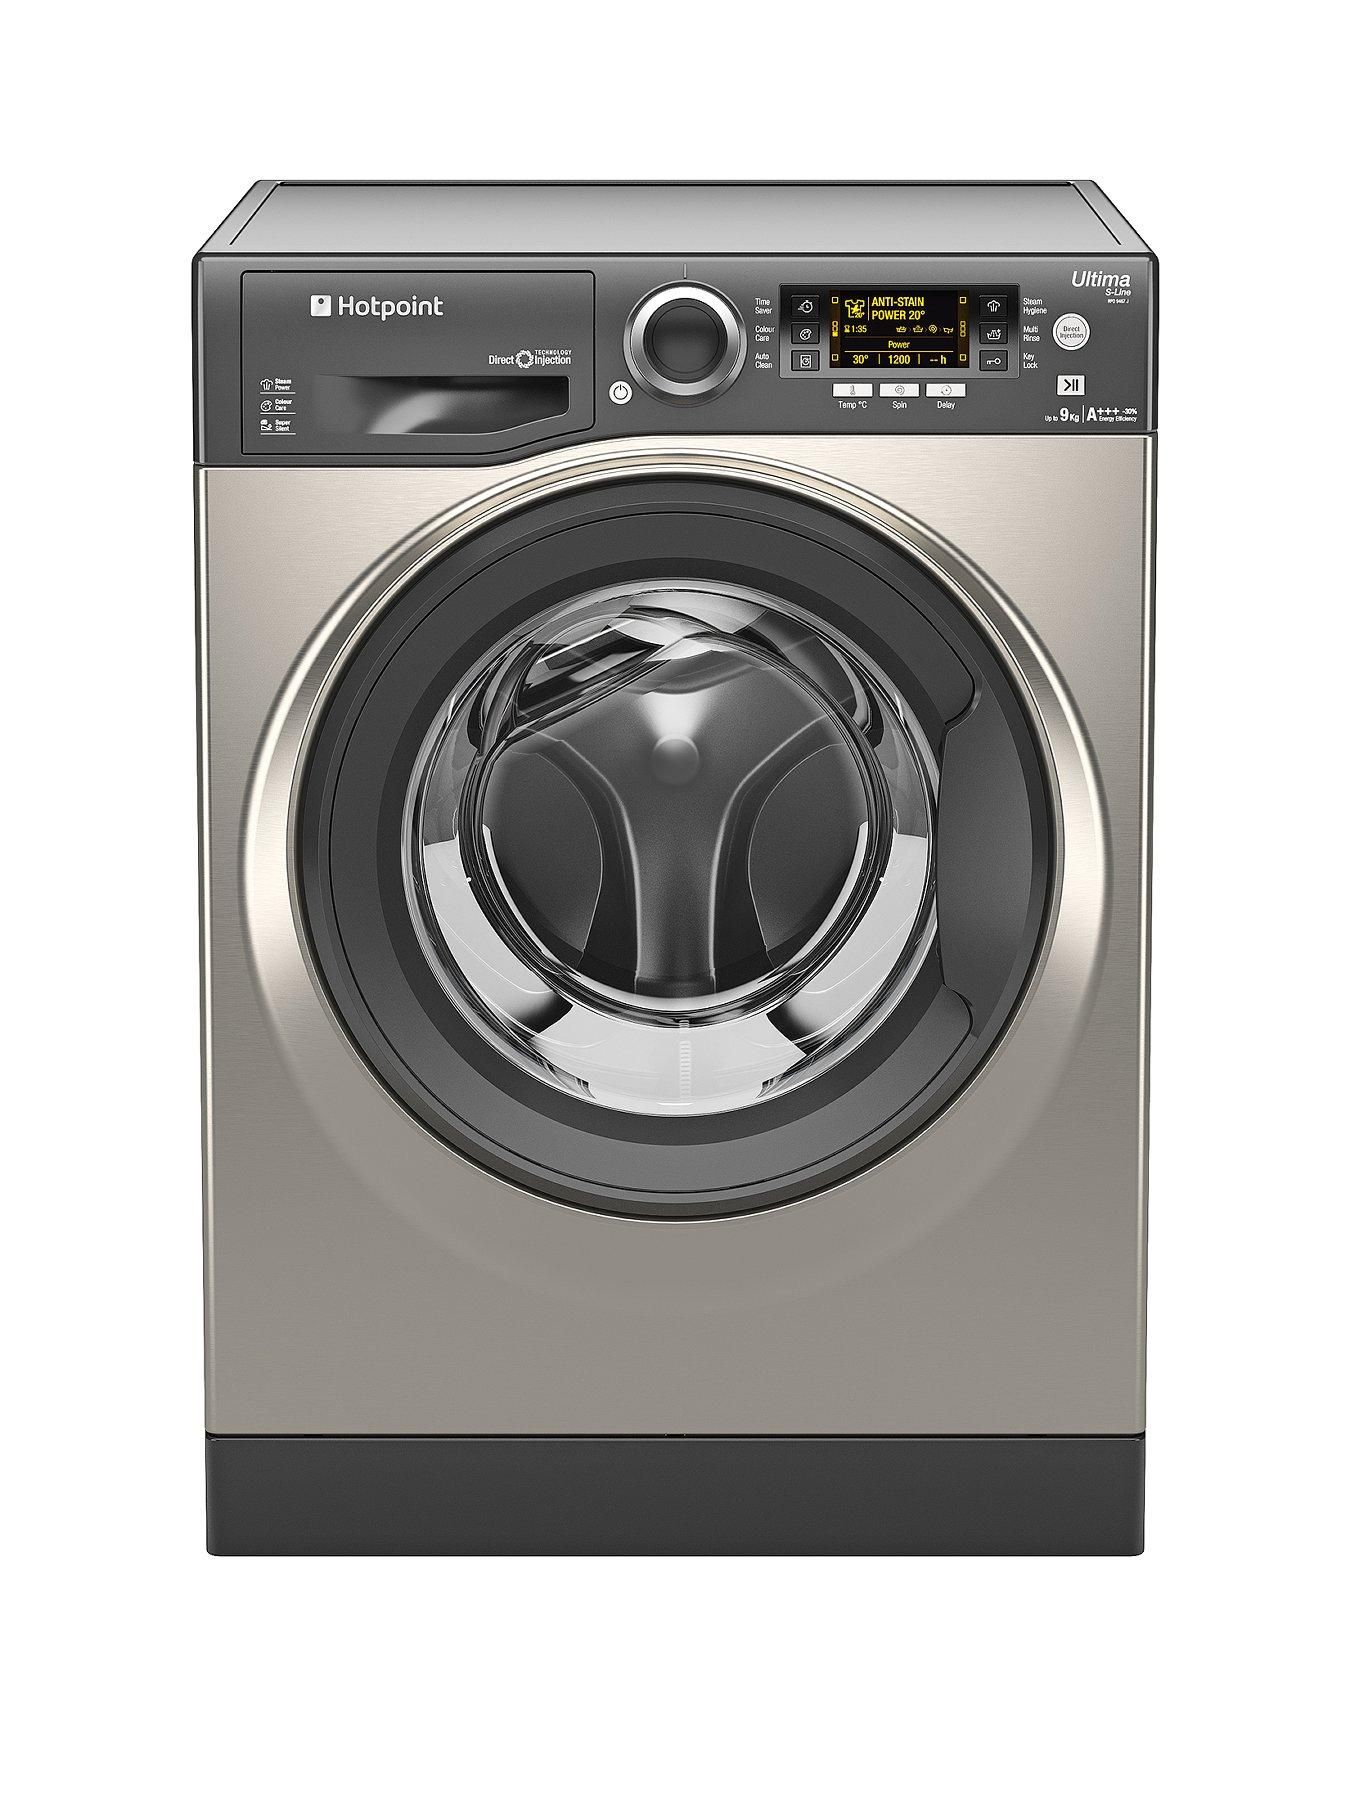 Womens Mens And Kids Fashion Furniture Electricals More Washing Machine Hotpoint Washing Machine